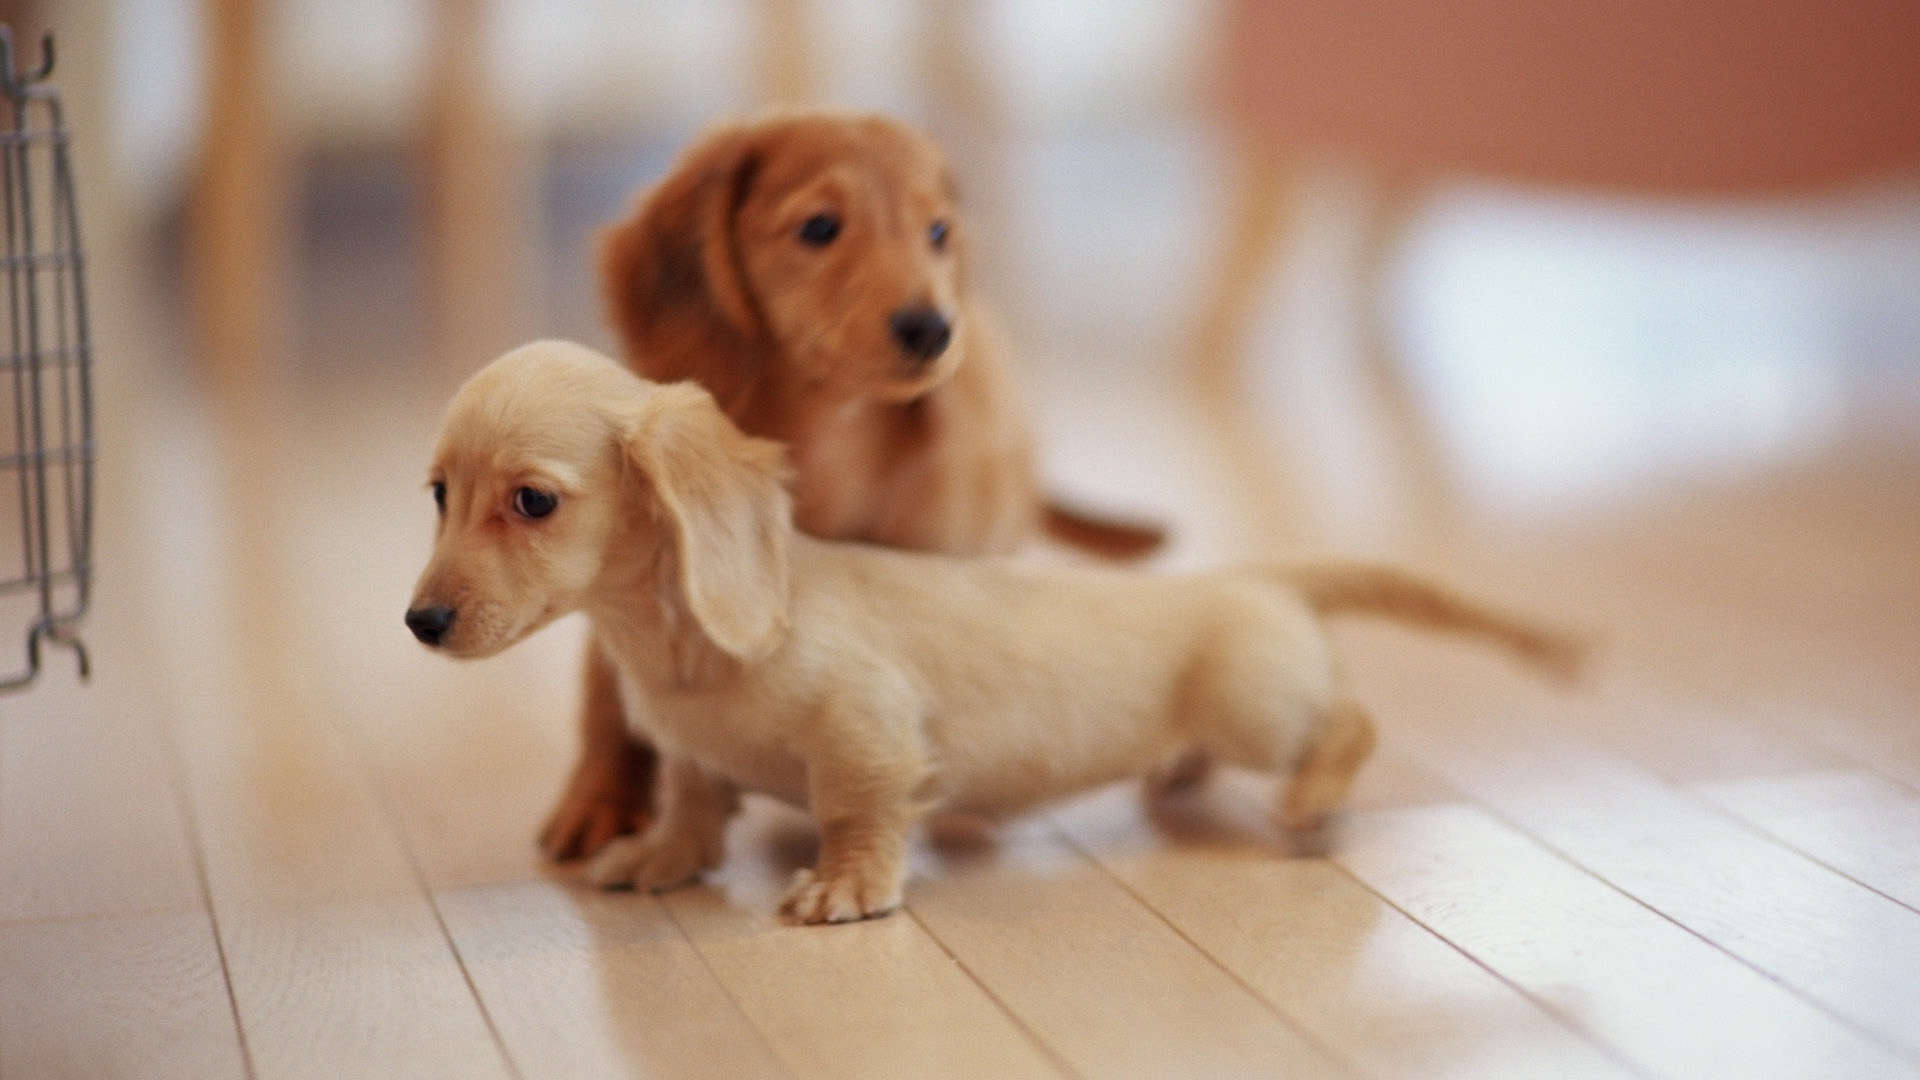 Wallpaper Cute HD Dachshund Puppies Upload At March 13 1920x1080